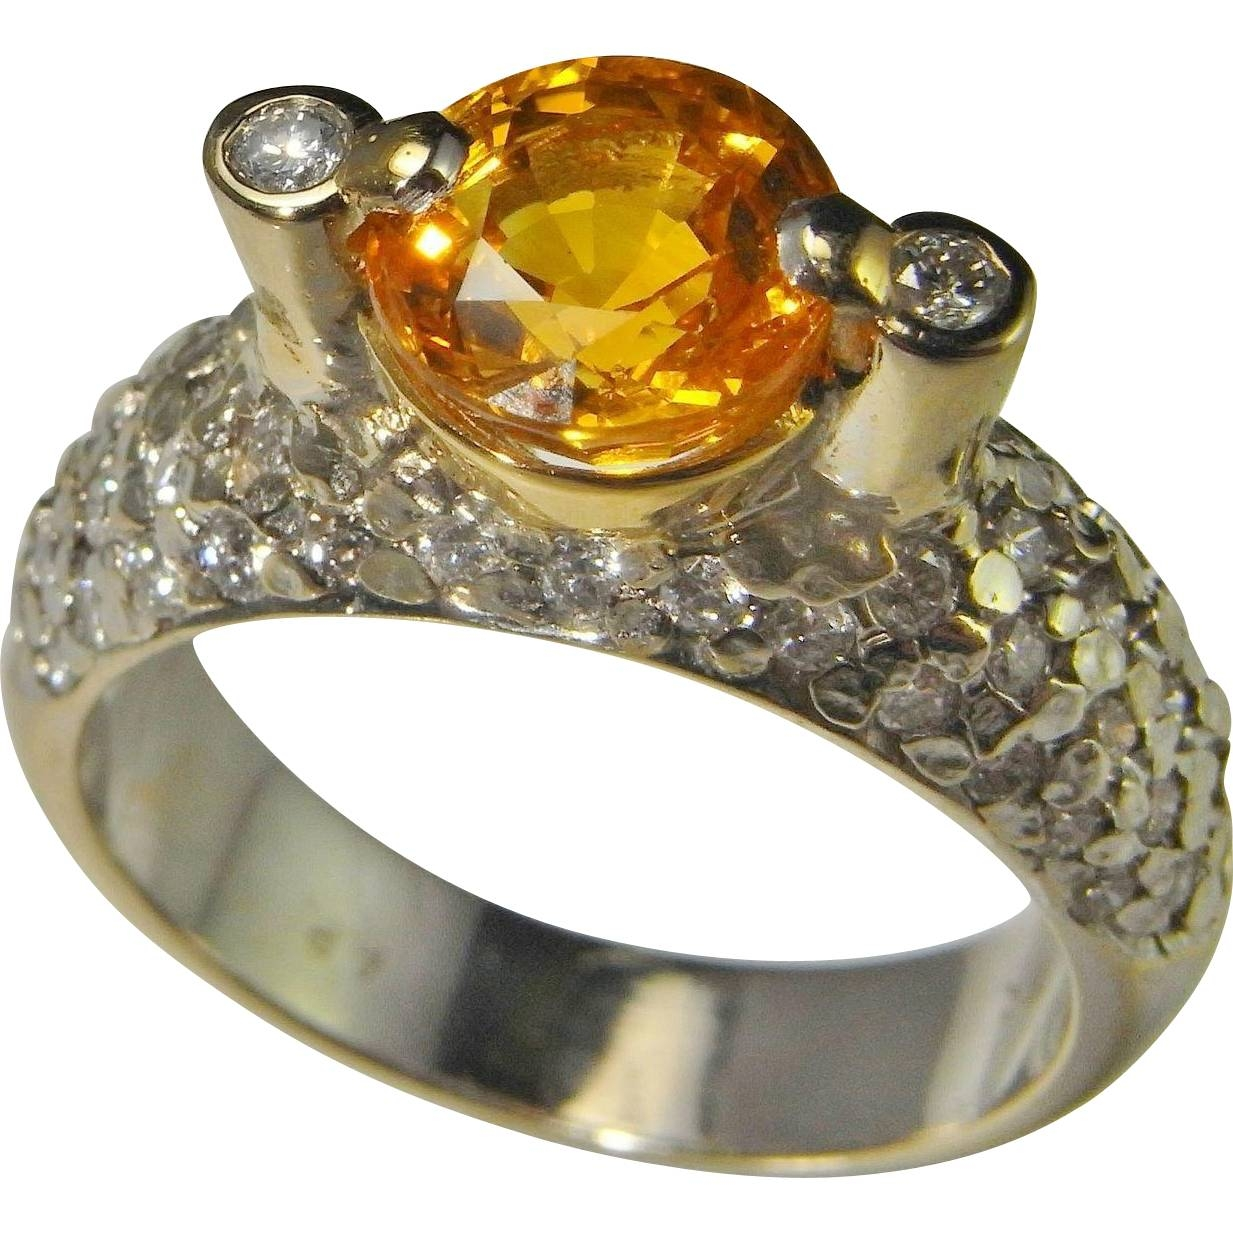 Golden Sapphire Diamond Engagement Ring Wedding Ring Anniversary In Most Current Sapphire Anniversary Rings (View 10 of 25)